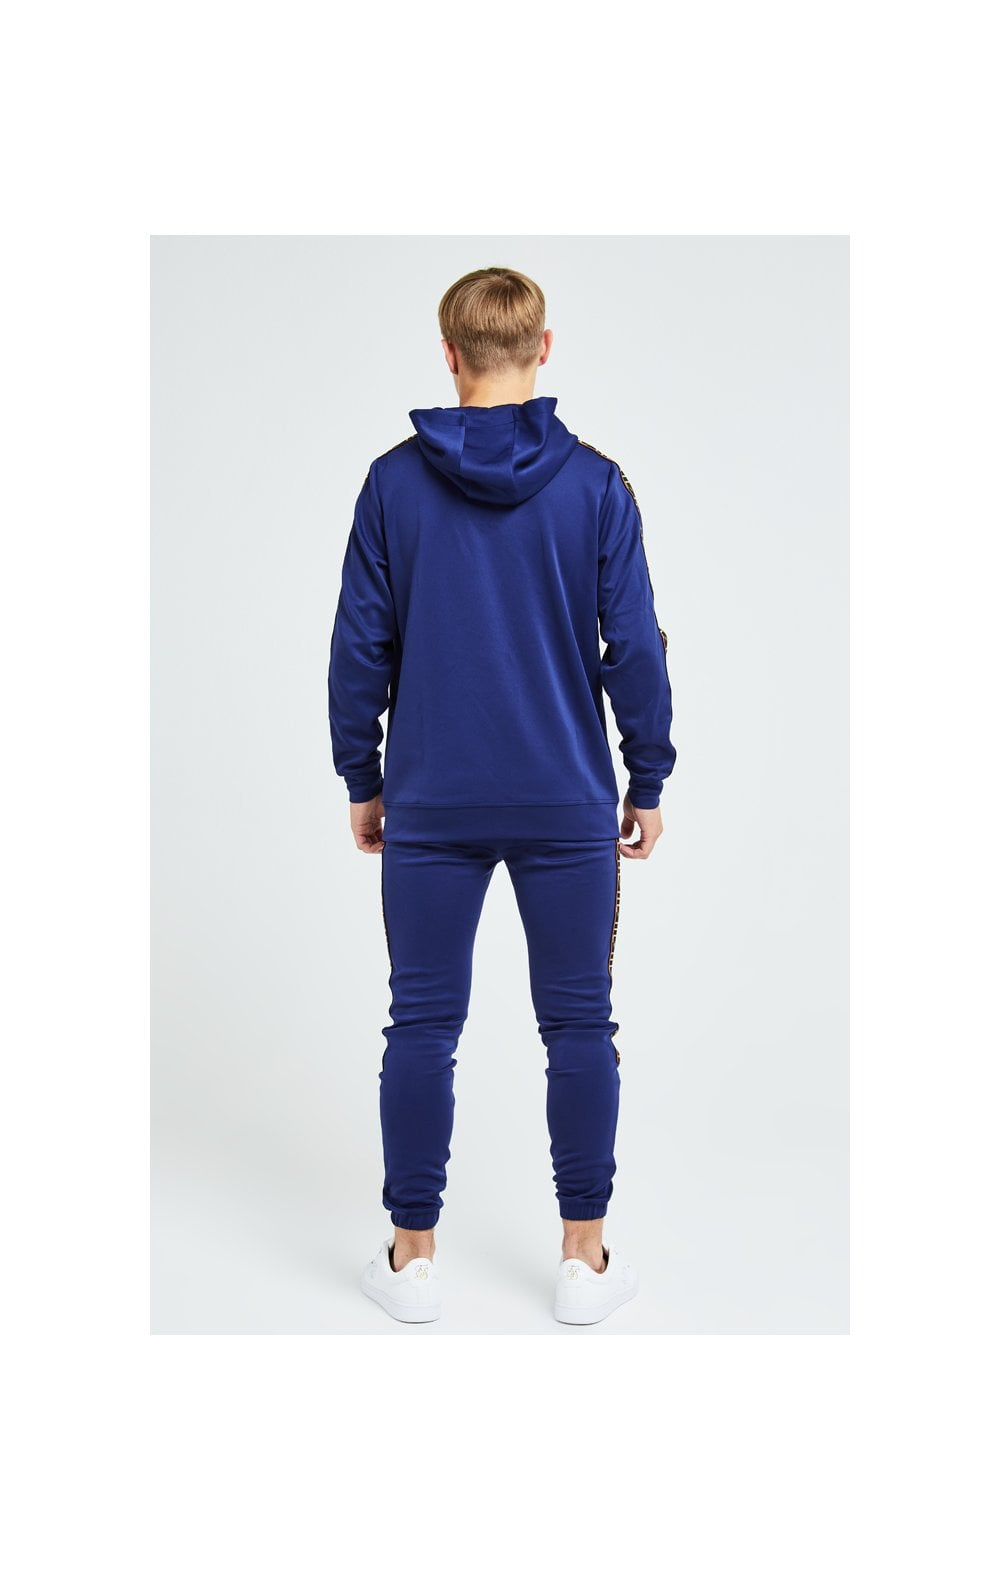 Load image into Gallery viewer, Illusive London Patriot Overhead Hoodie - Blue & Orange (5)